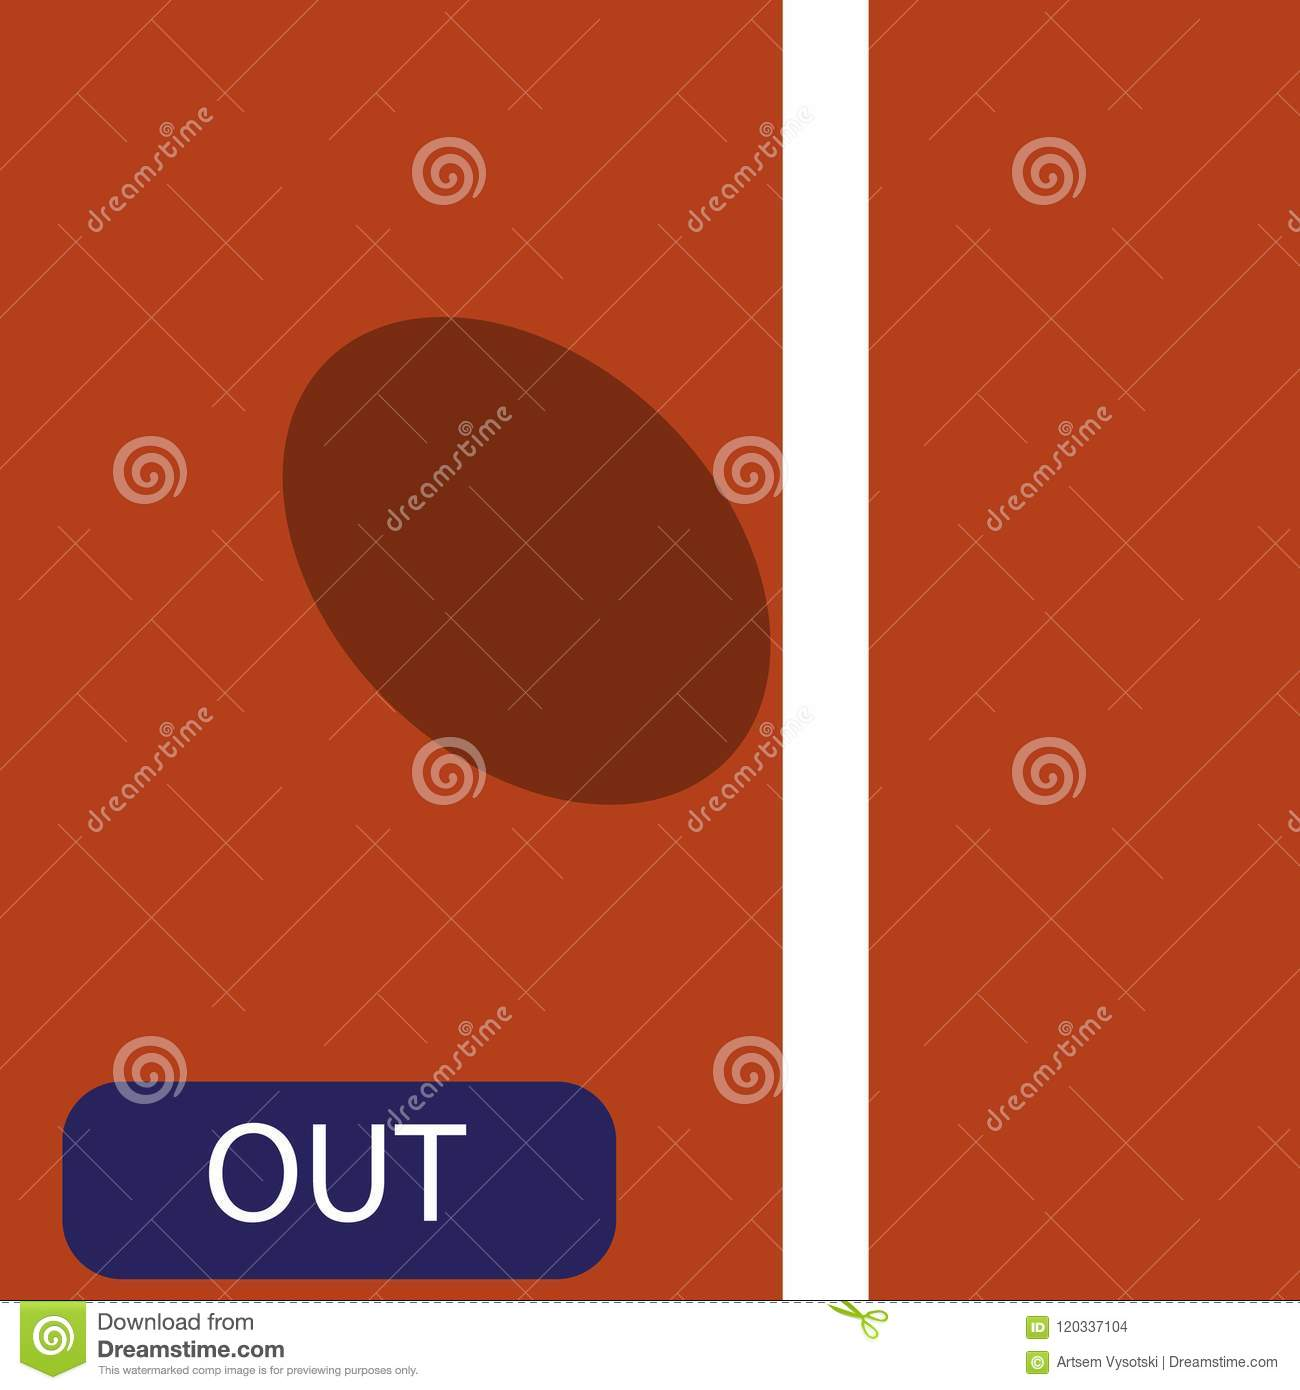 The Strike Icon In The Big Tennis On The Ground  Challenge Of The